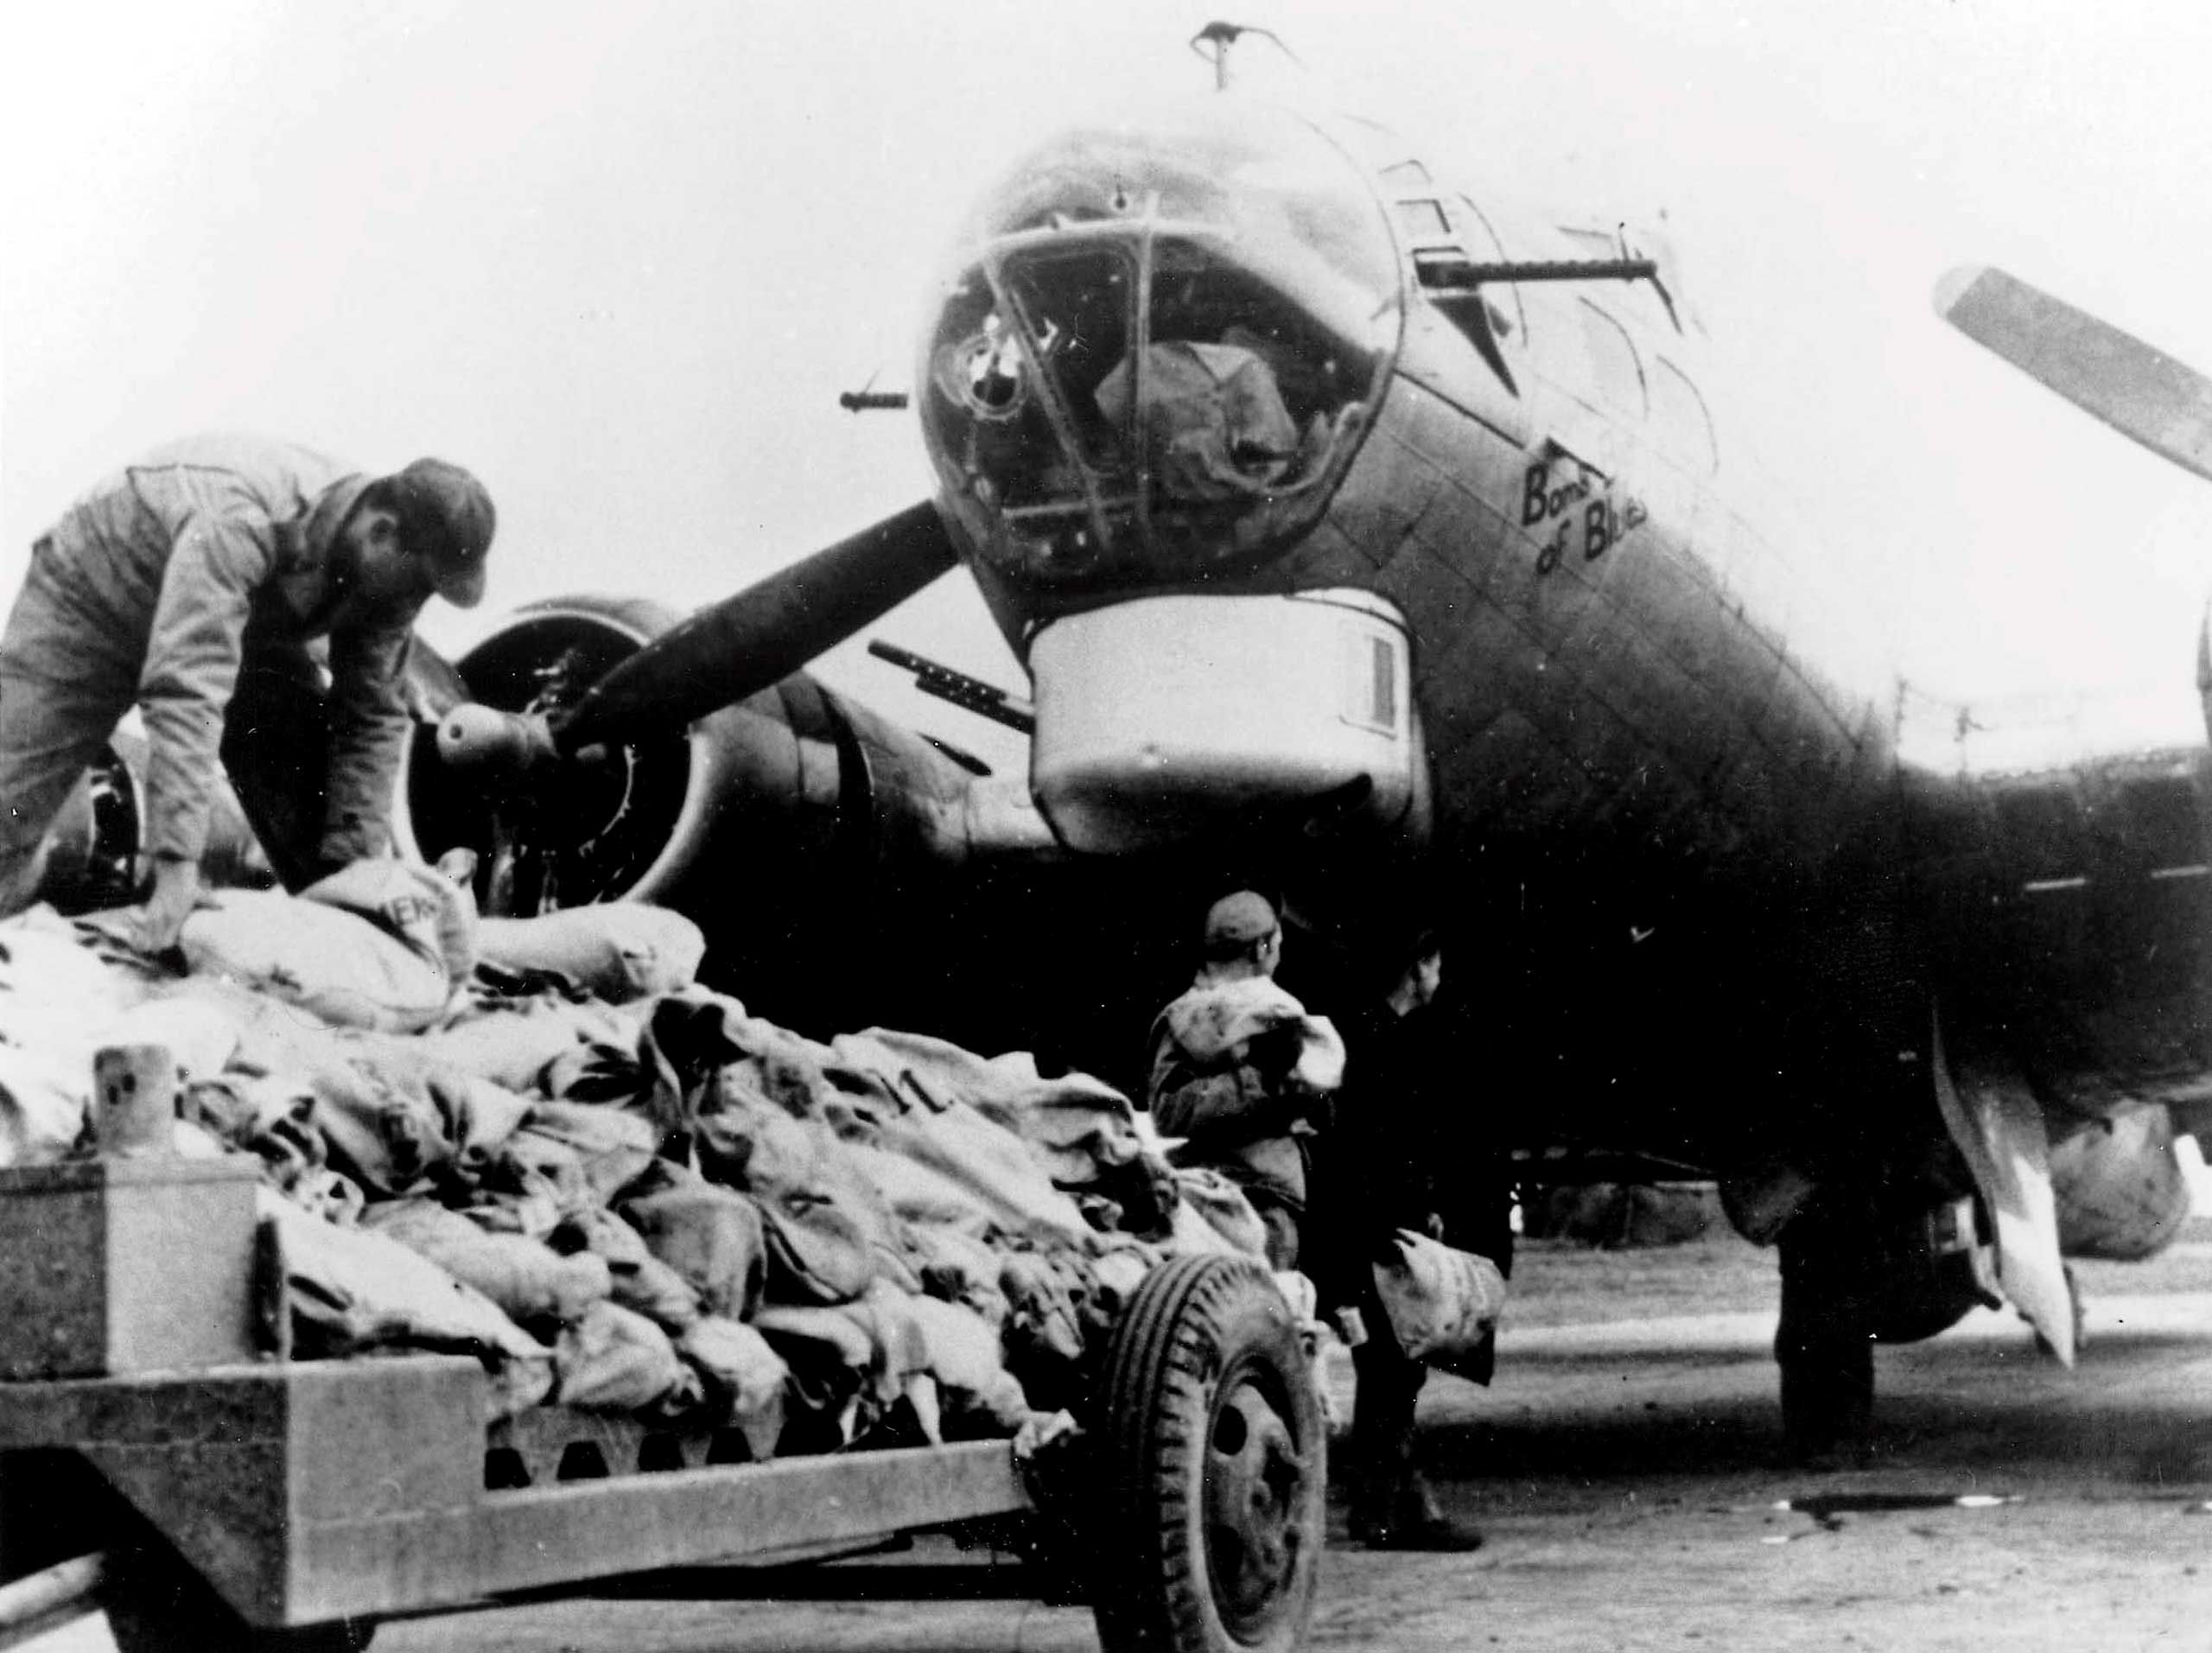 Workers load food onto an American B17 bomber during Operation Chowhound which involved dropping essential food supplies from bombers to the starving Dutch people at the end of WWII.